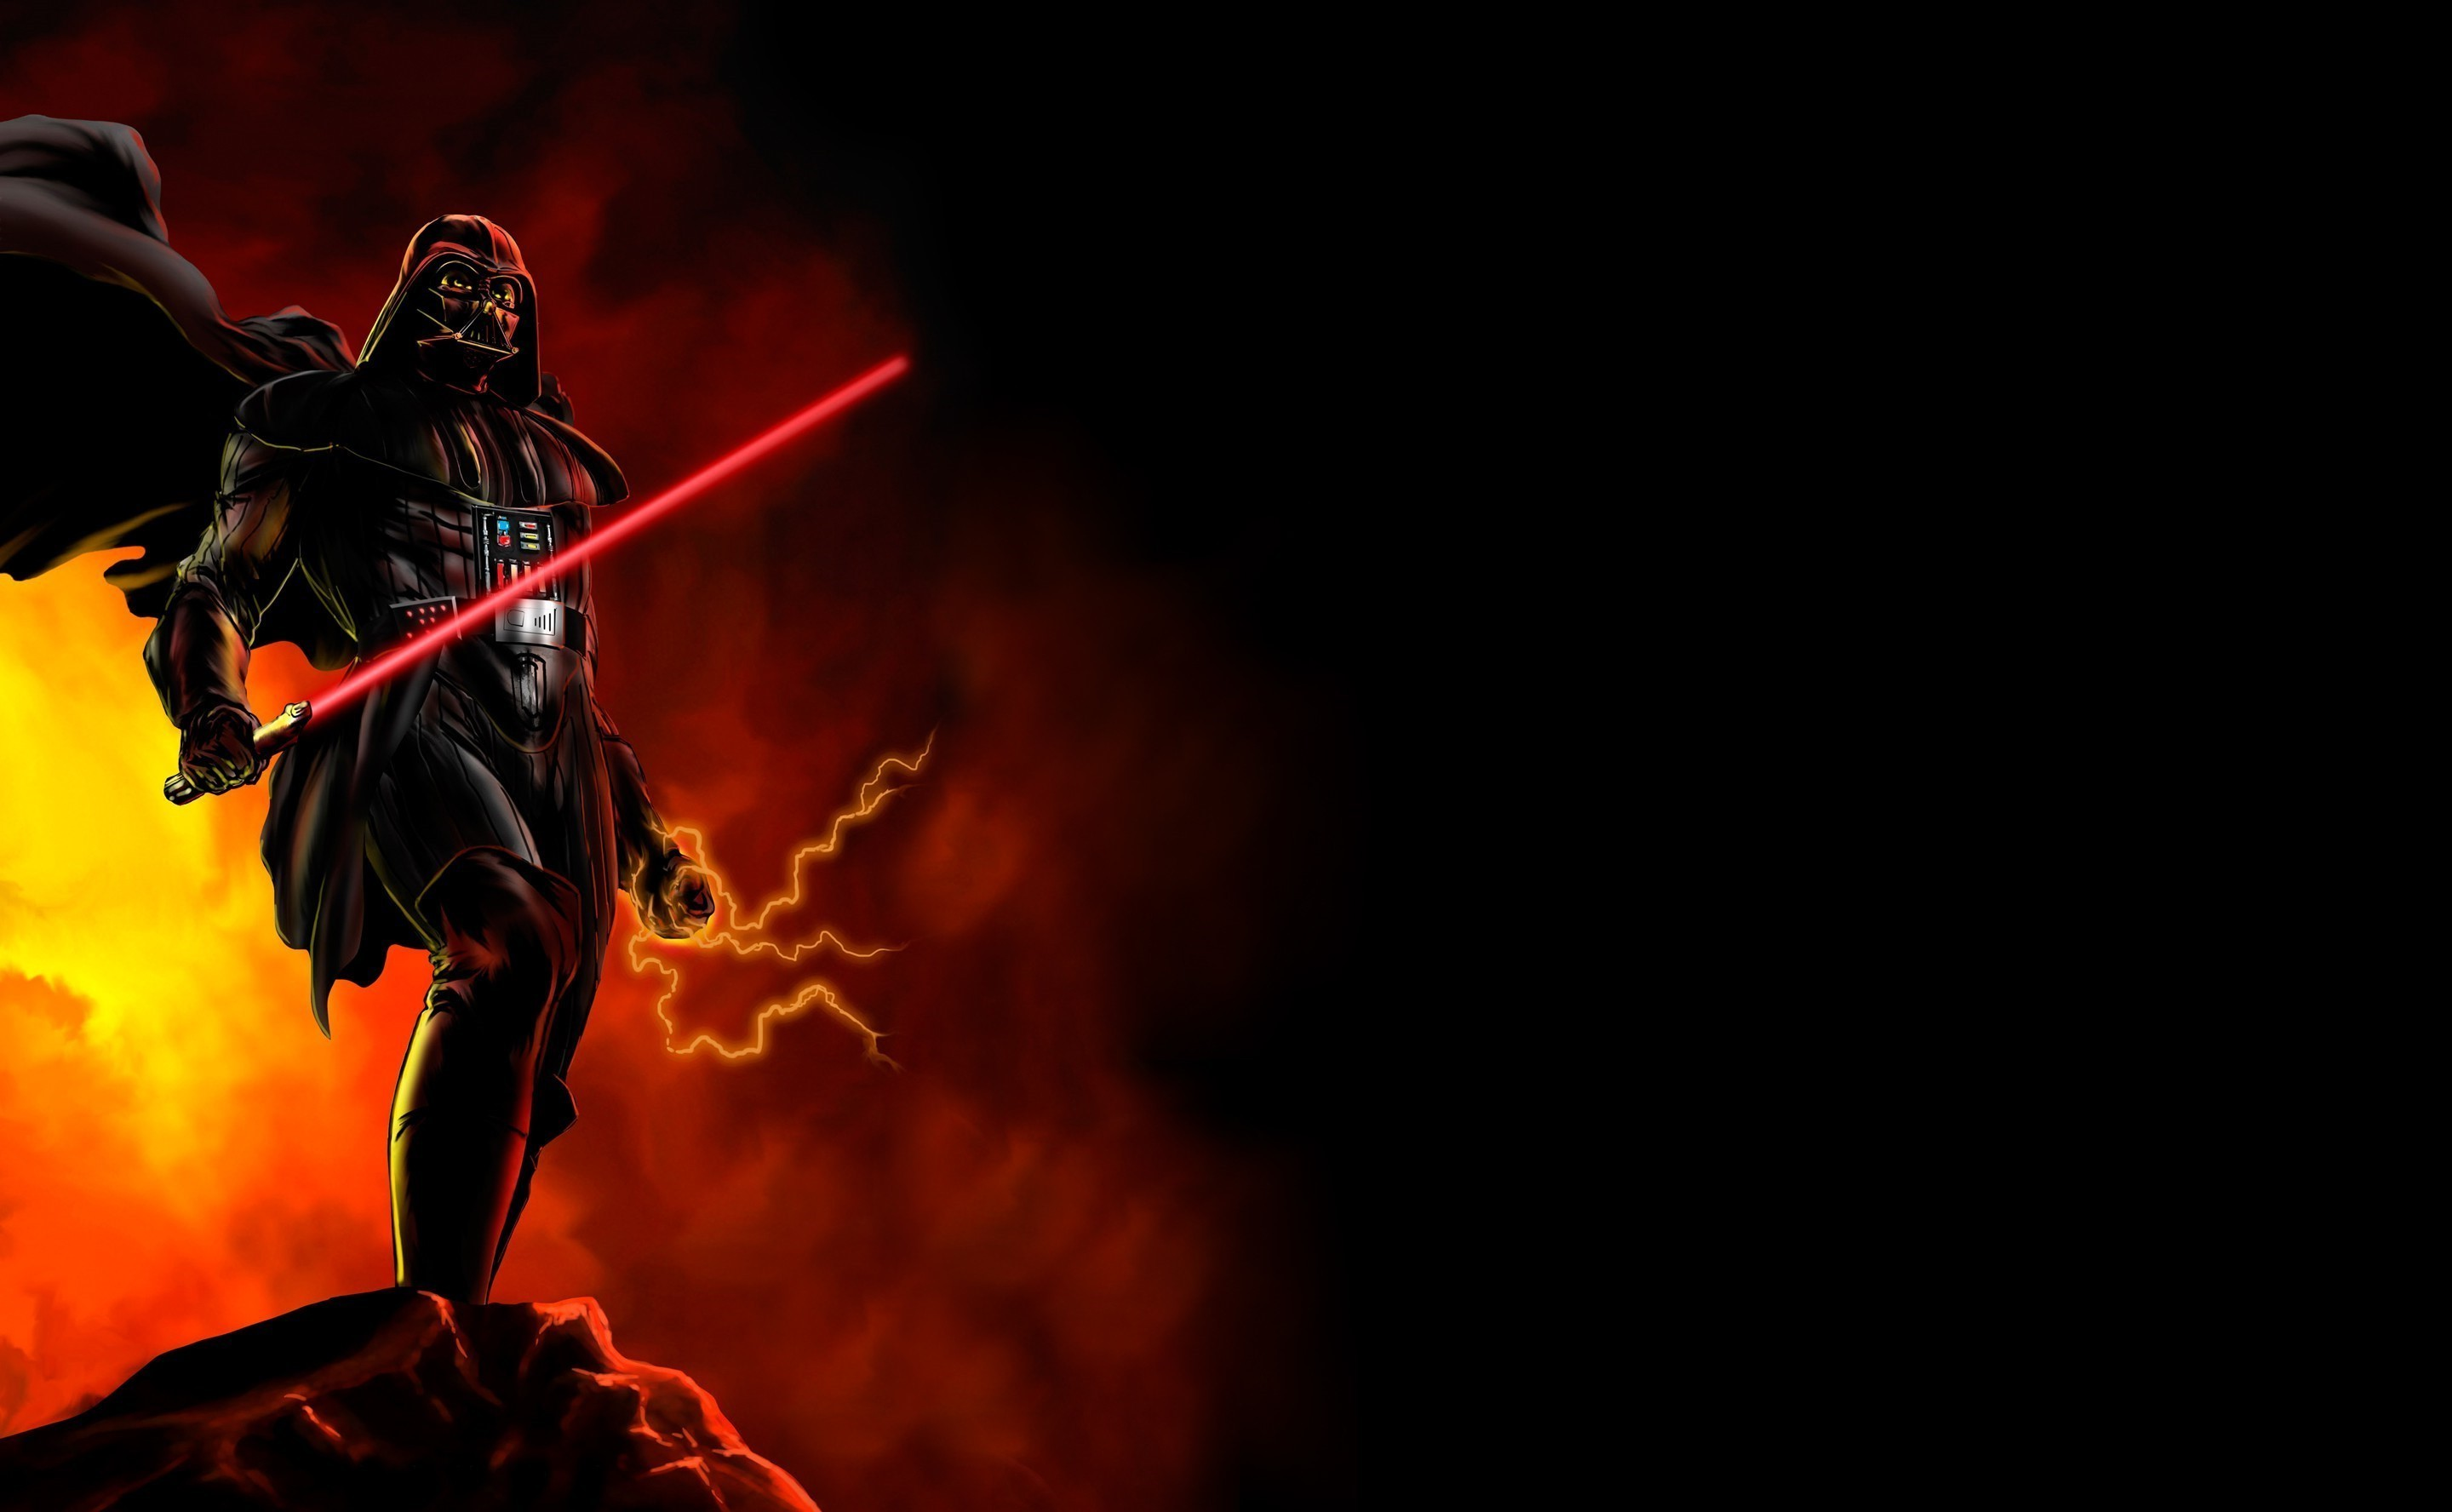 Star Wars Darth Vader Wallpapers 76 Background Pictures